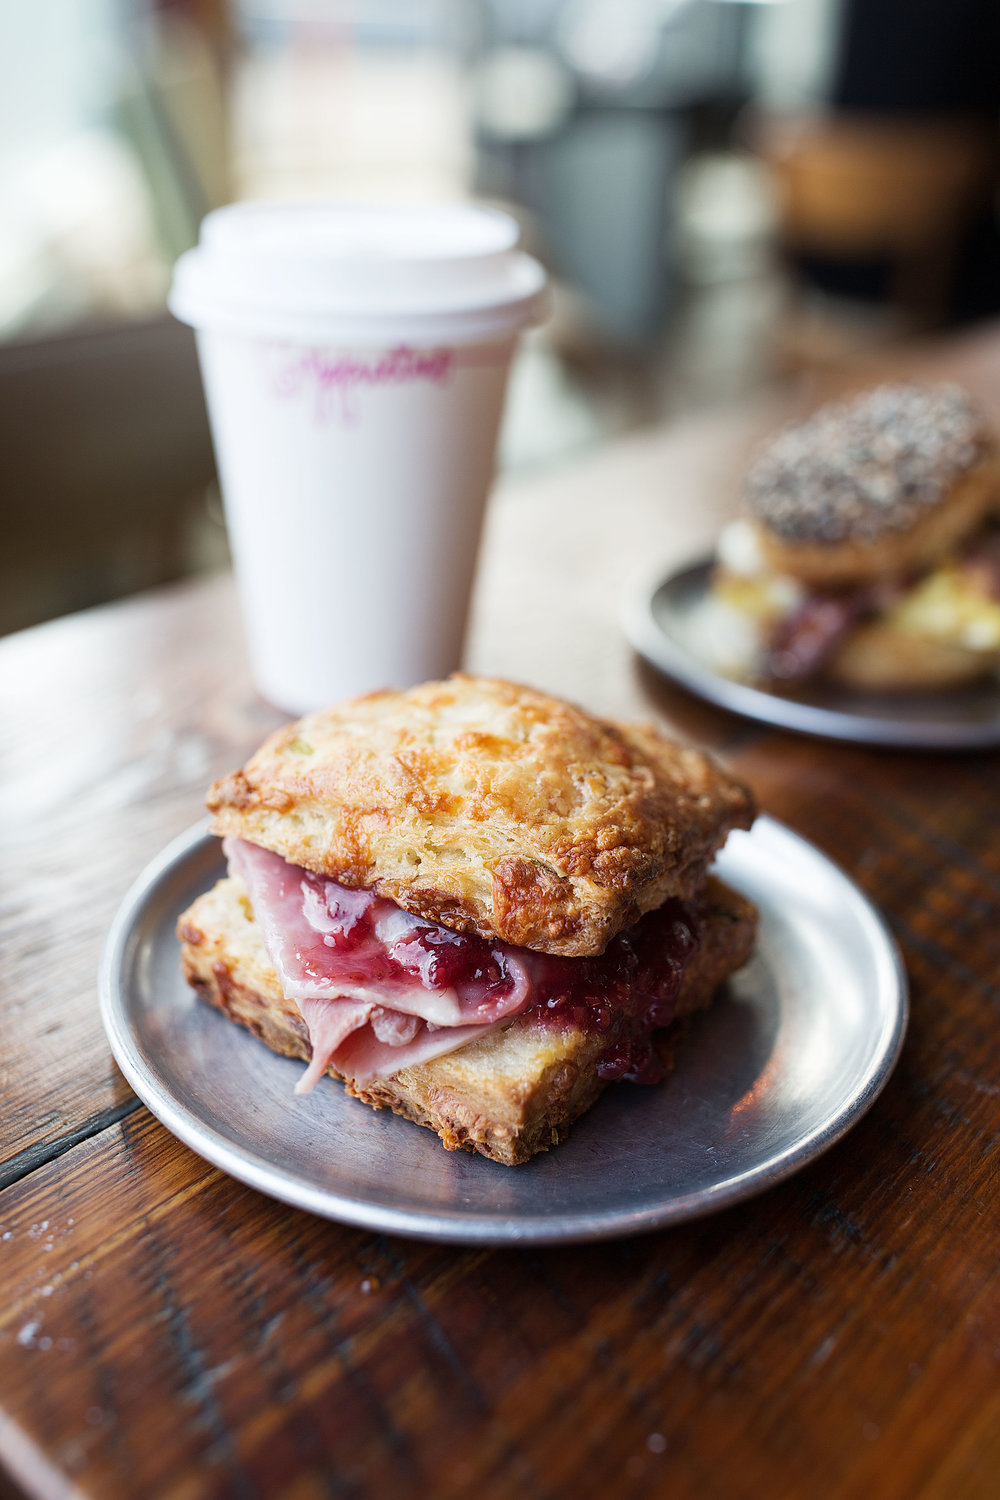 biscuit with gryuere ham and raspberry jam